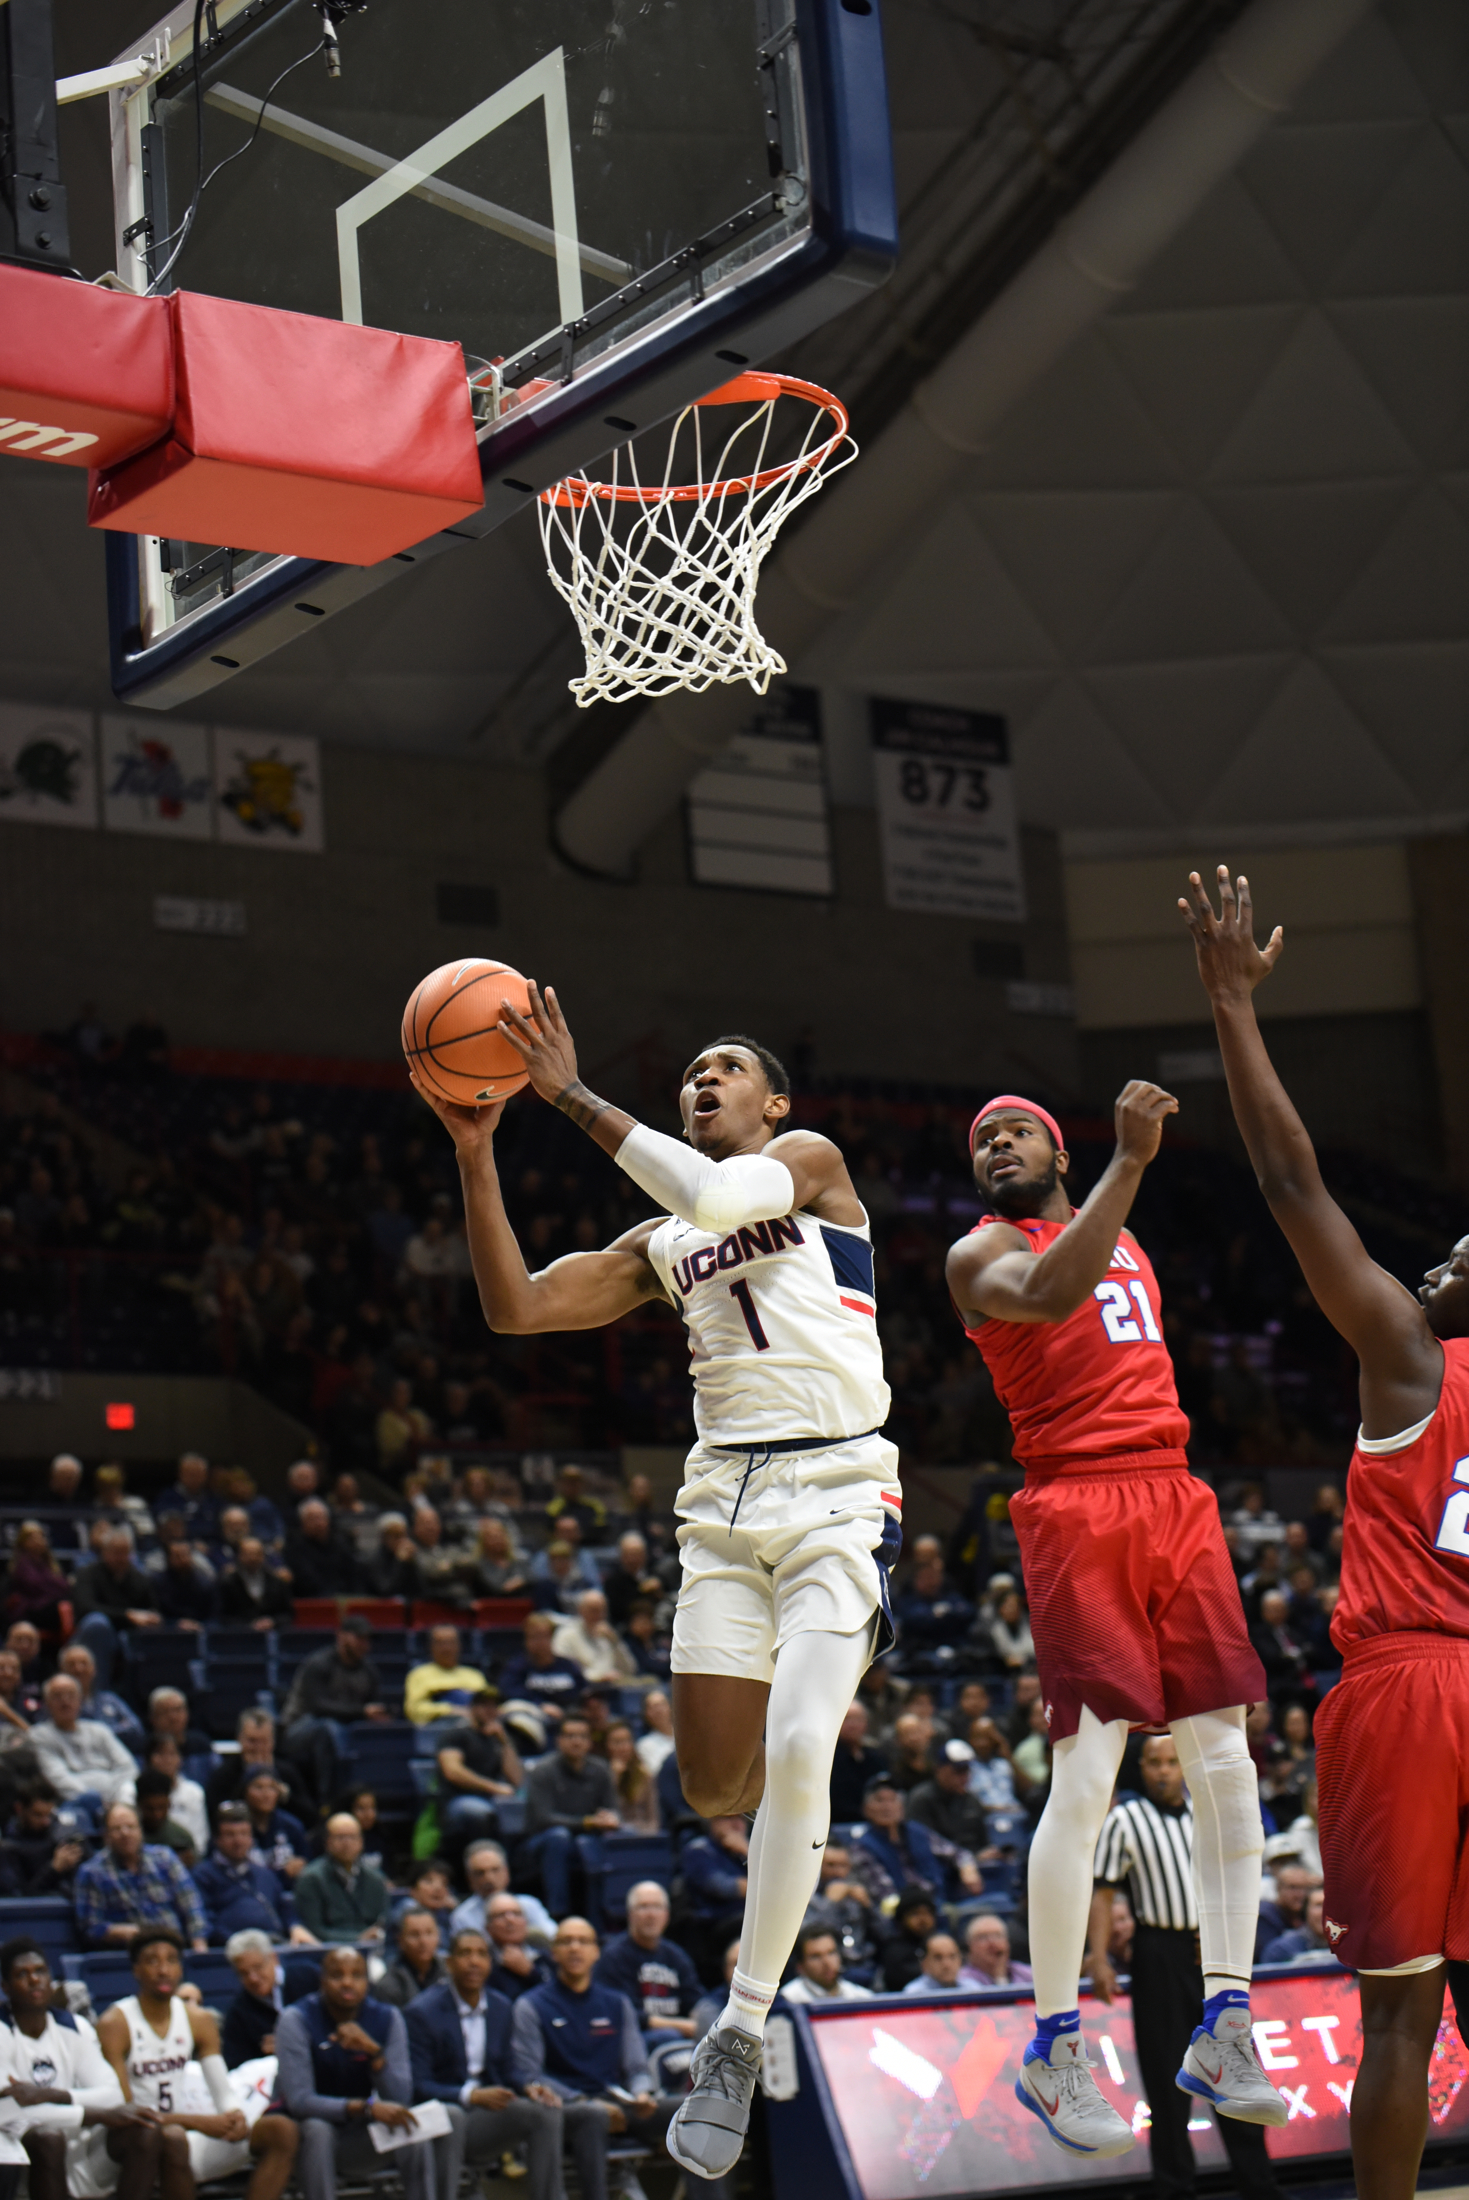 Sophomore guard Christian Vital (1) completes layup during the Huskies 63-52 victory over the SMU Mustangs on Thursday, Jan. 26, 2017 at Gampel Pavilion. (Charlotte Lao/The Daily Campus)